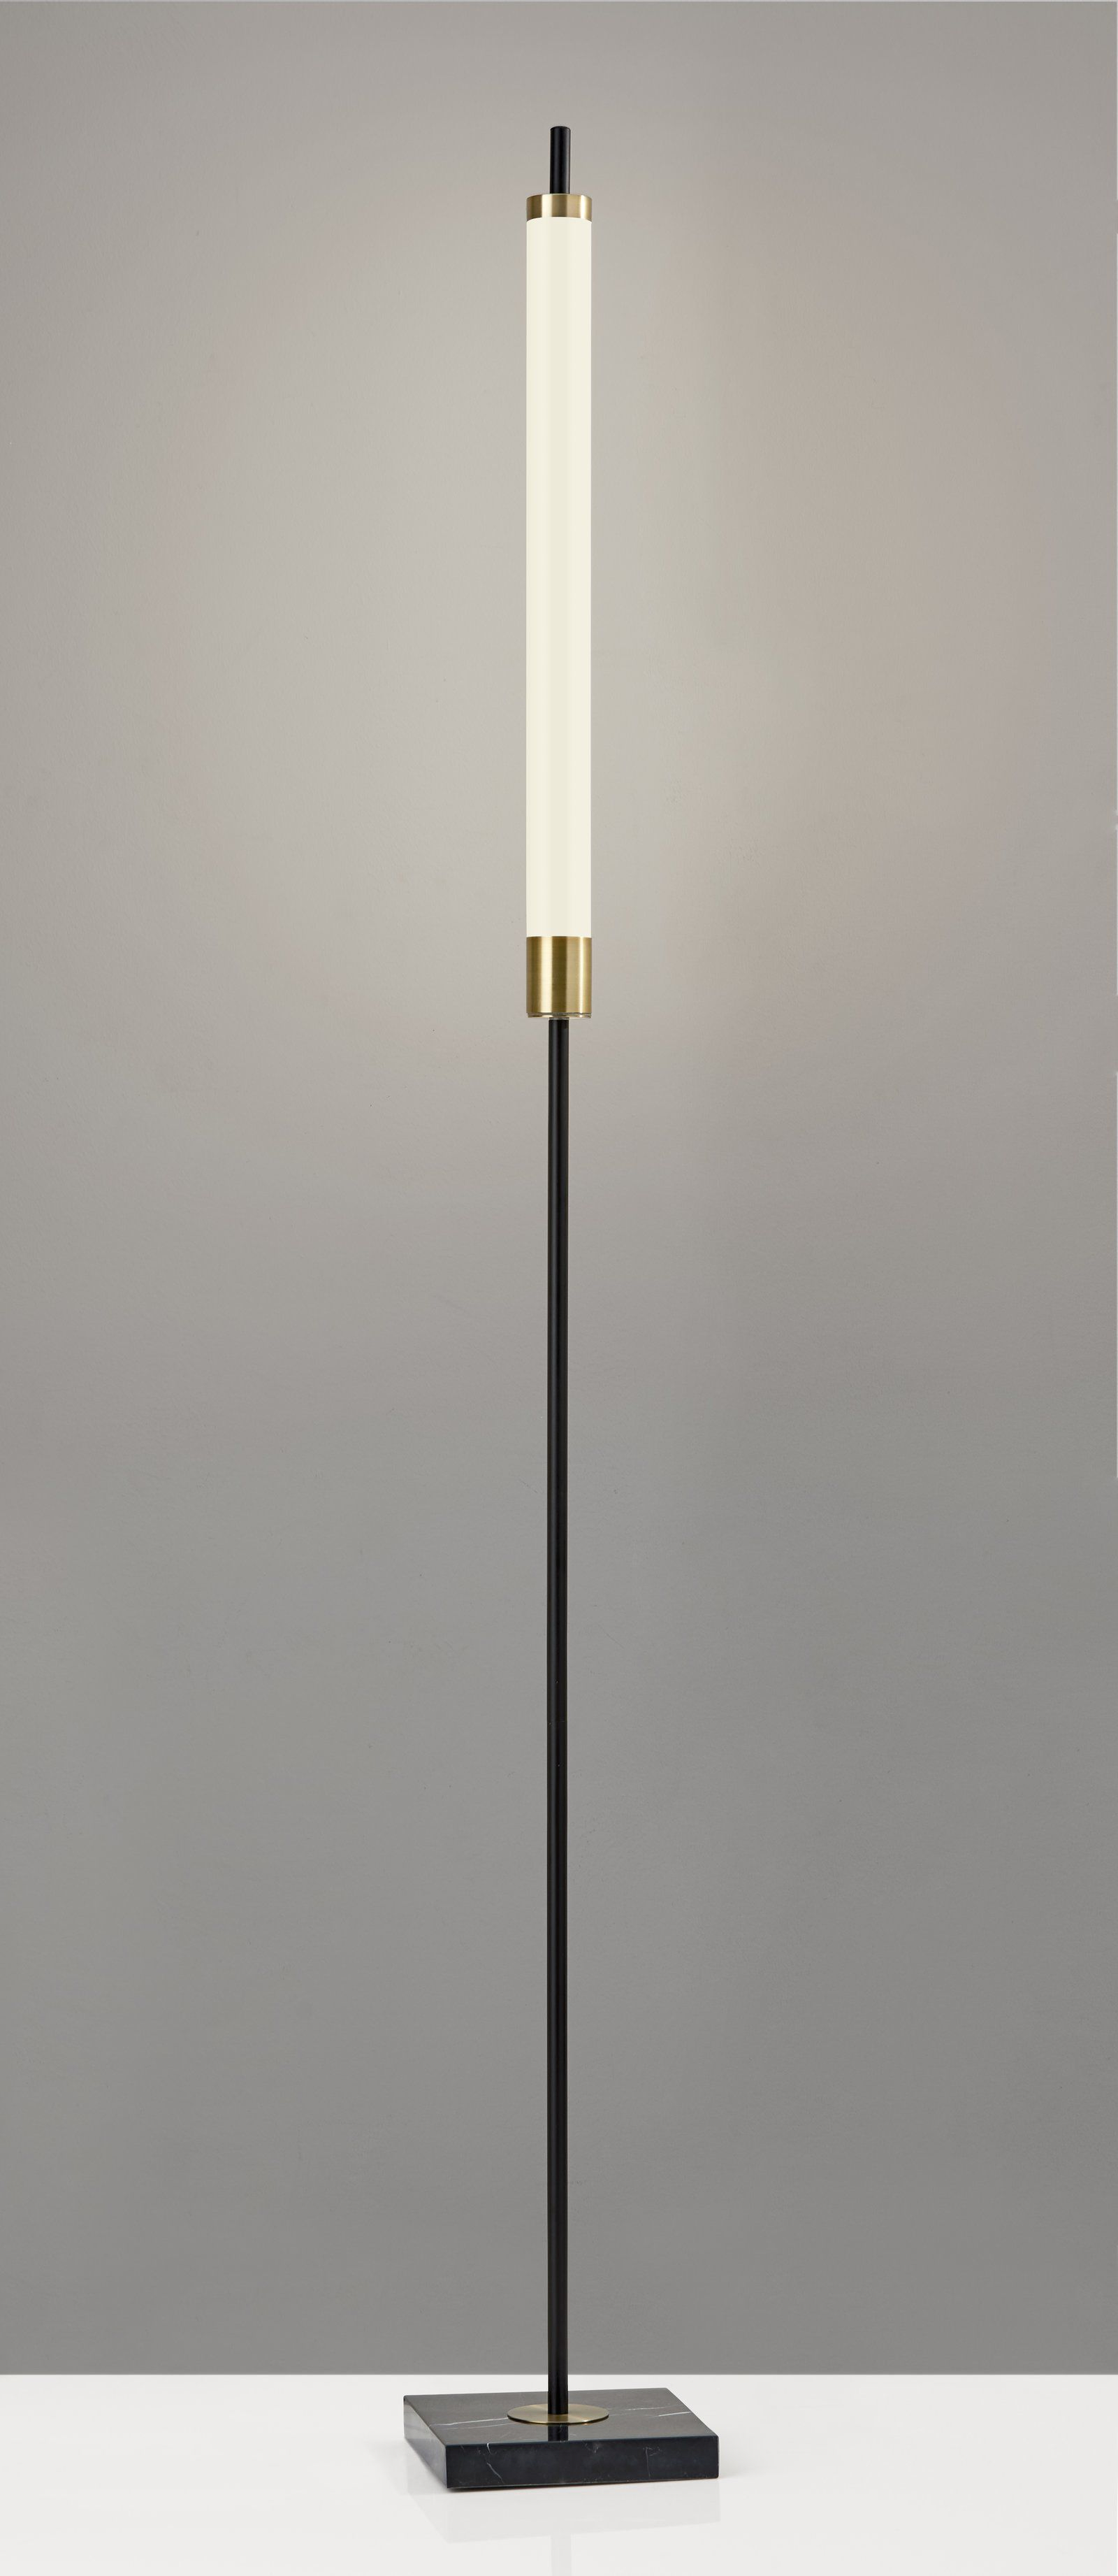 Wiley 72 Led Floor Lamp Lamp Floor Lamp Led Floor Lamp